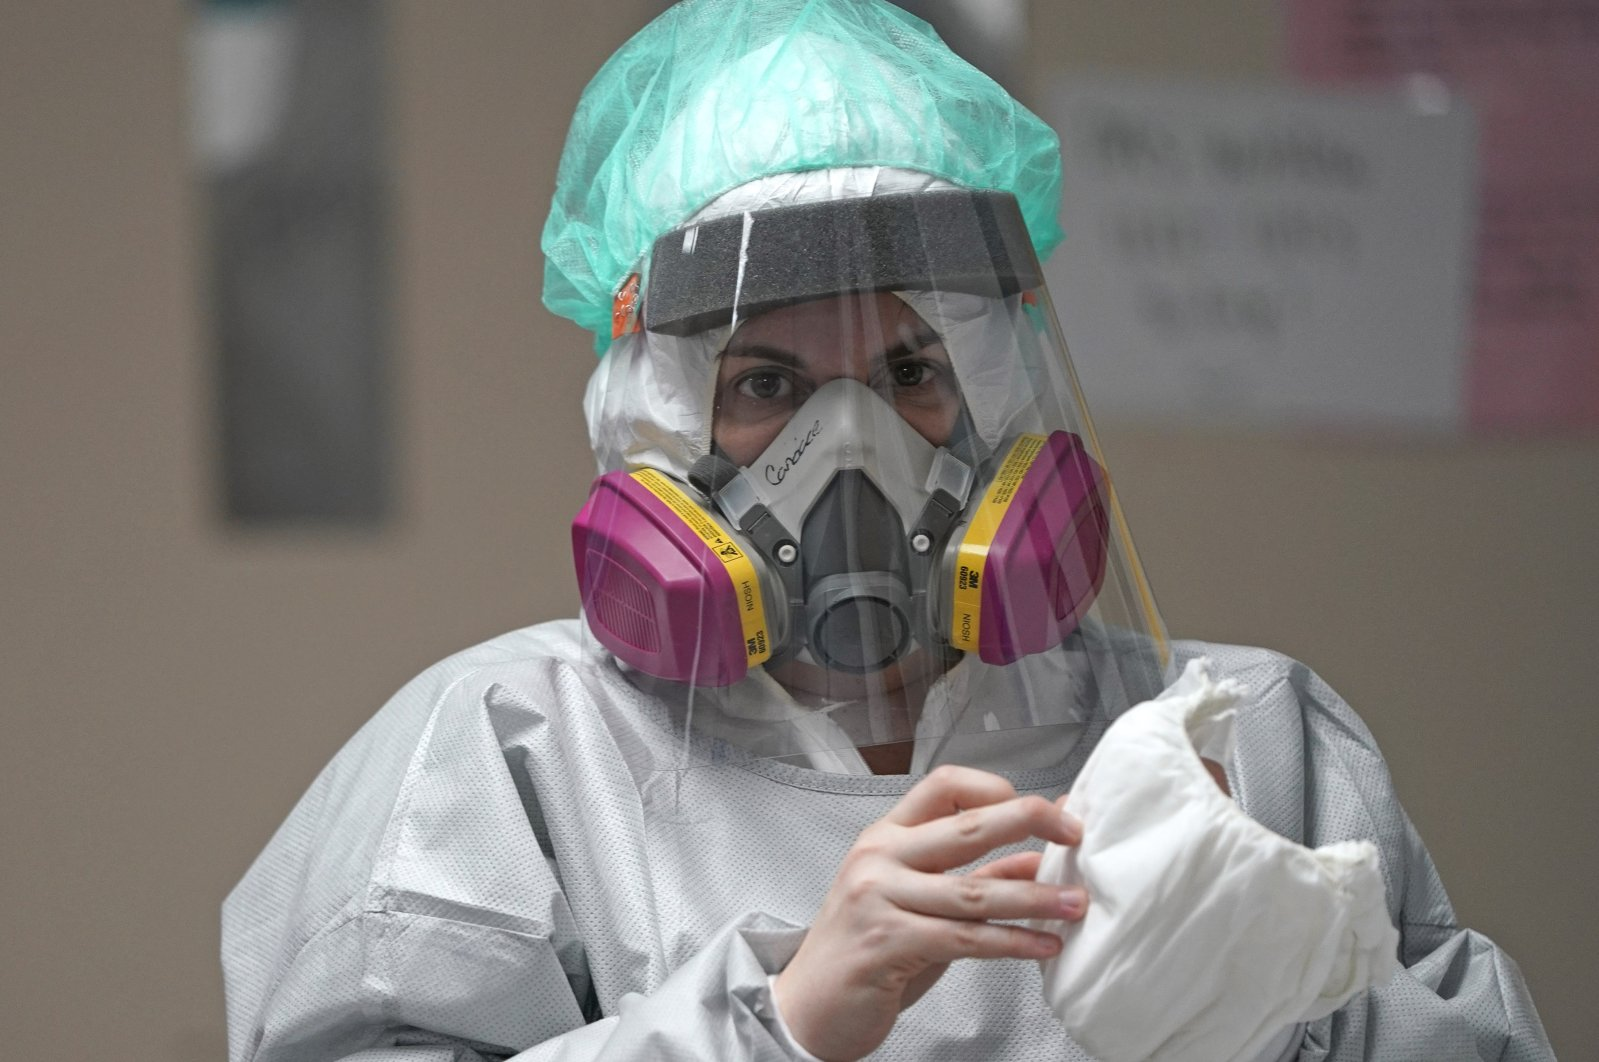 Registered nurse Candace Trammeor grabs shoe coverings inside the Coronavirus Unit at United Memorial Medical Center, Houston, Texas, U.S., July 6, 2020. (AP Photo)